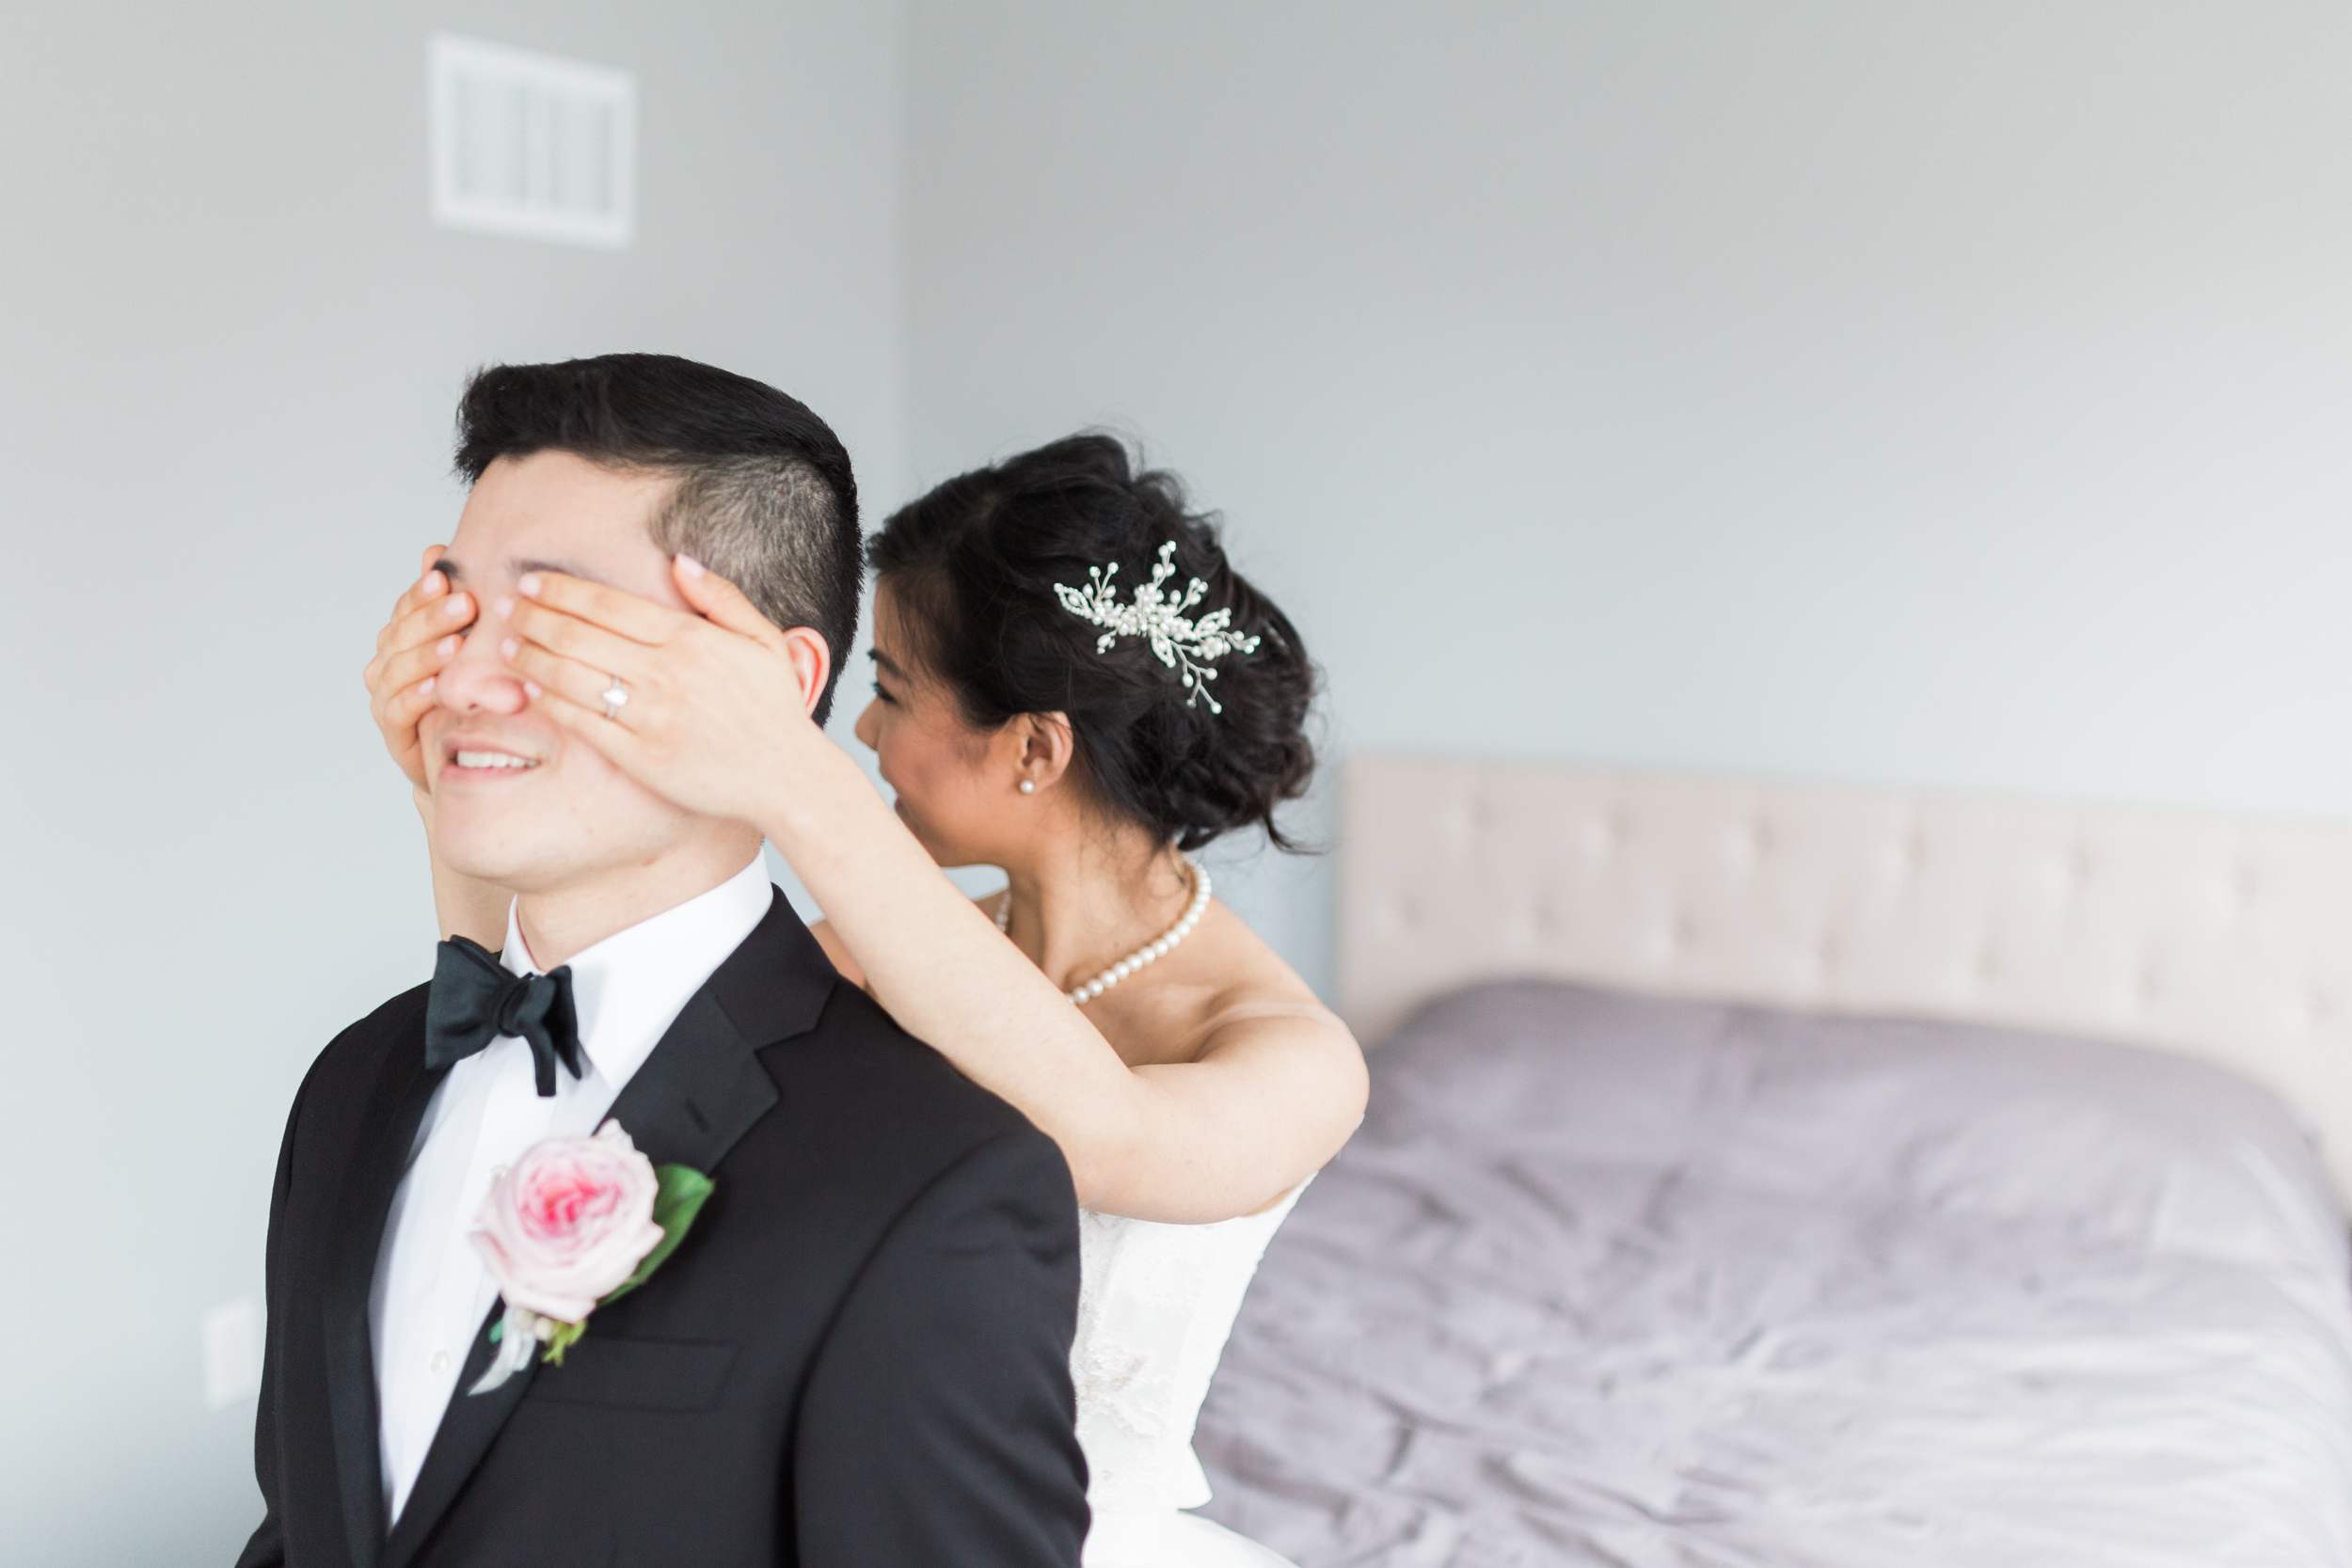 Cari Zhu Photography - Alexander Muir Gardens Wedding - First Look-9351.jpg